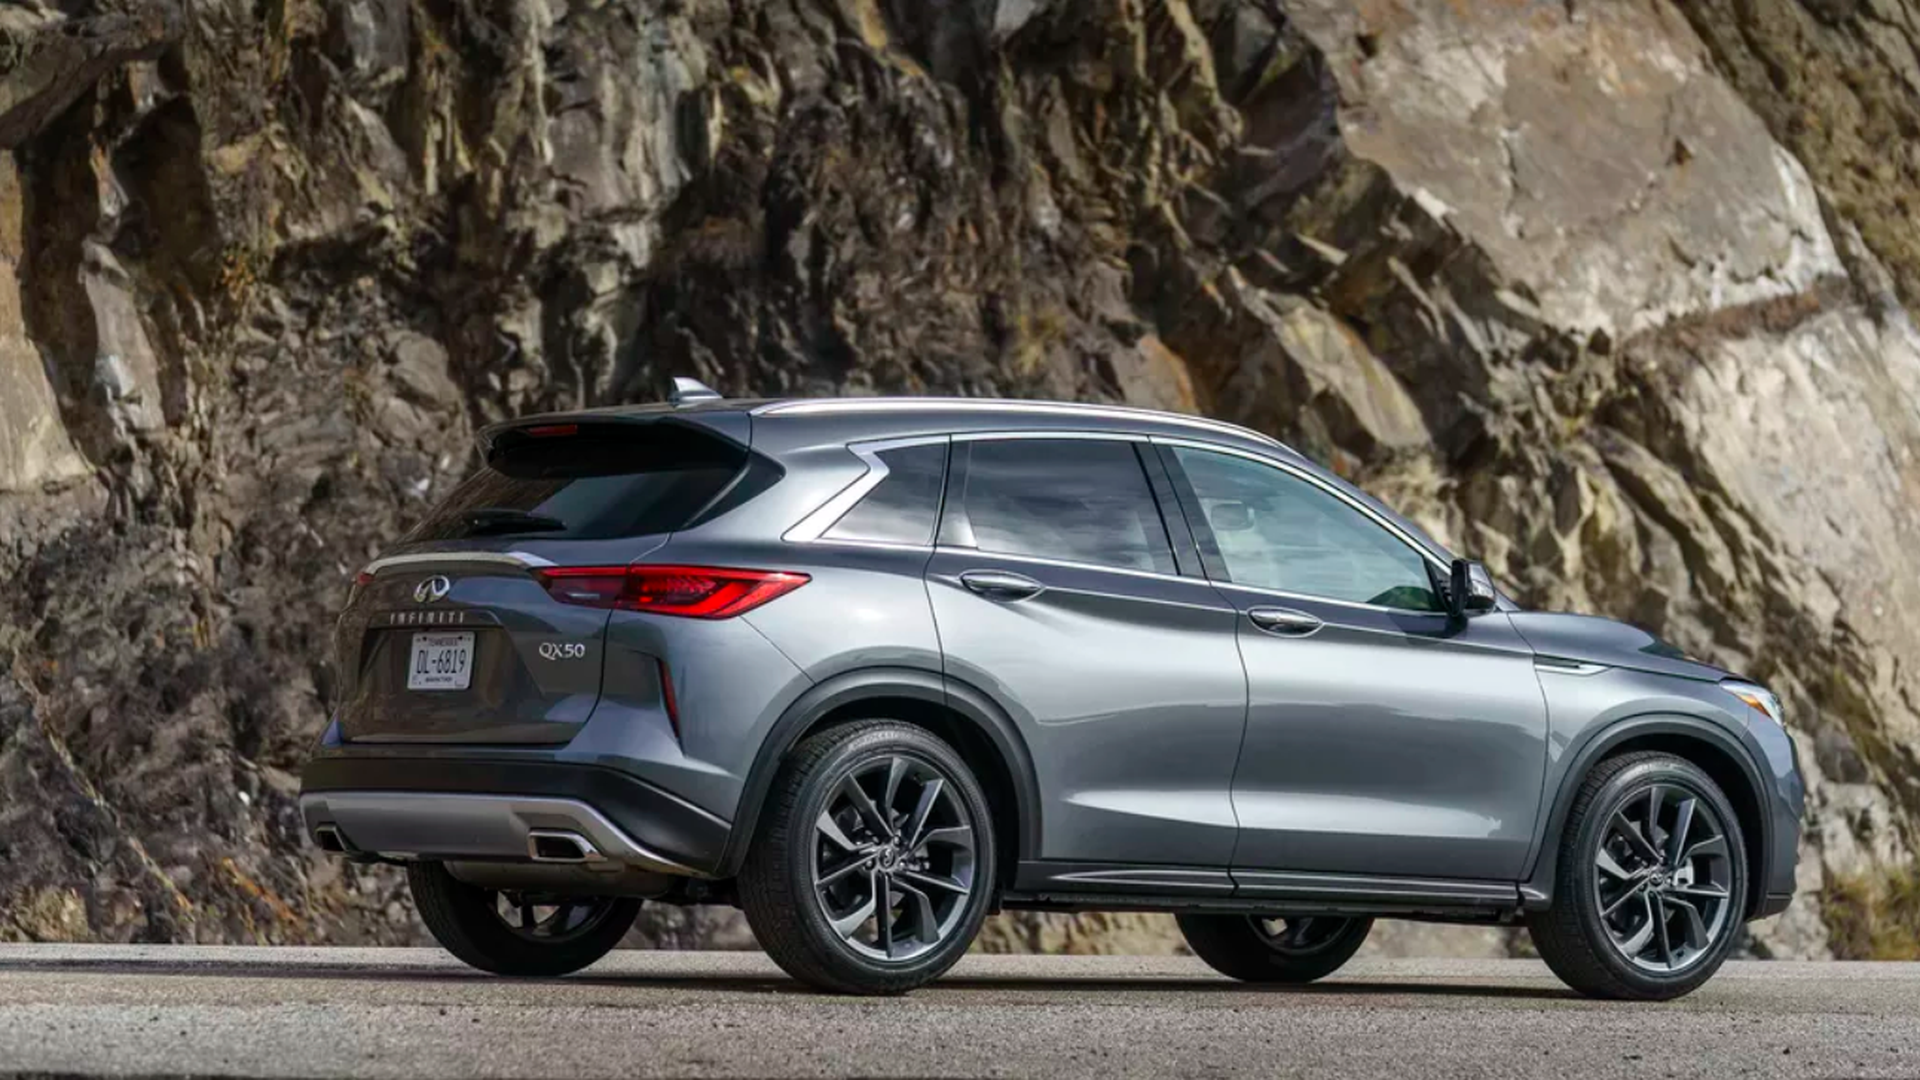 In this image, the Infiniti Qx50 is seen while driving on a mountainous pass.